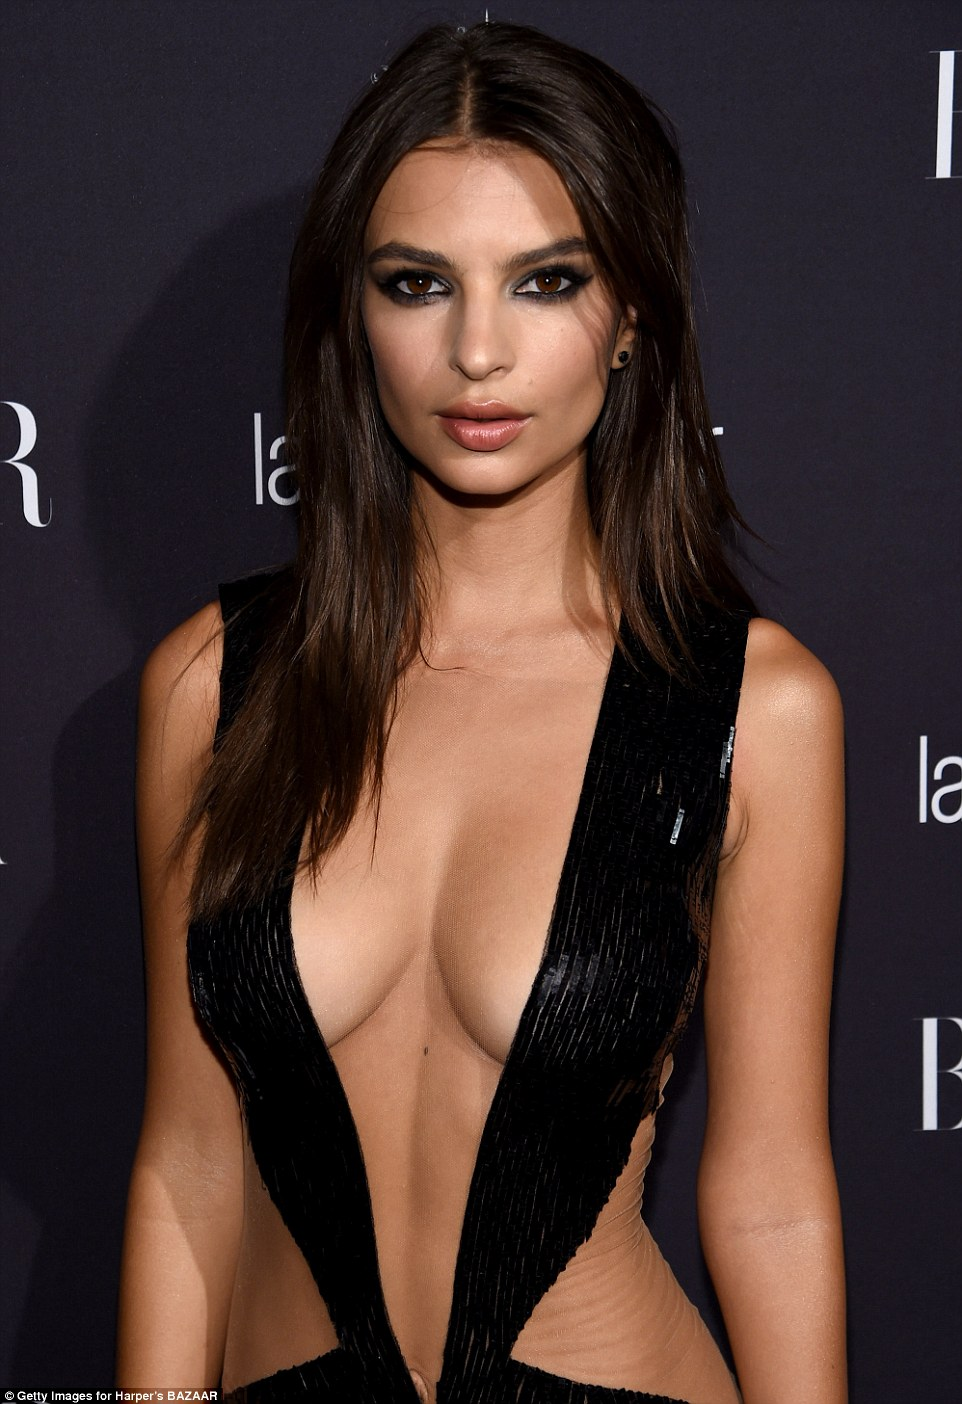 Provocative design: Emily Ratajkowski, 25, took the plunge in a sexy cut-out dress as she hit the black carpet at The Plaza Hotel for Carine Roitfeld's annual star-studded New York Fashion Week affair